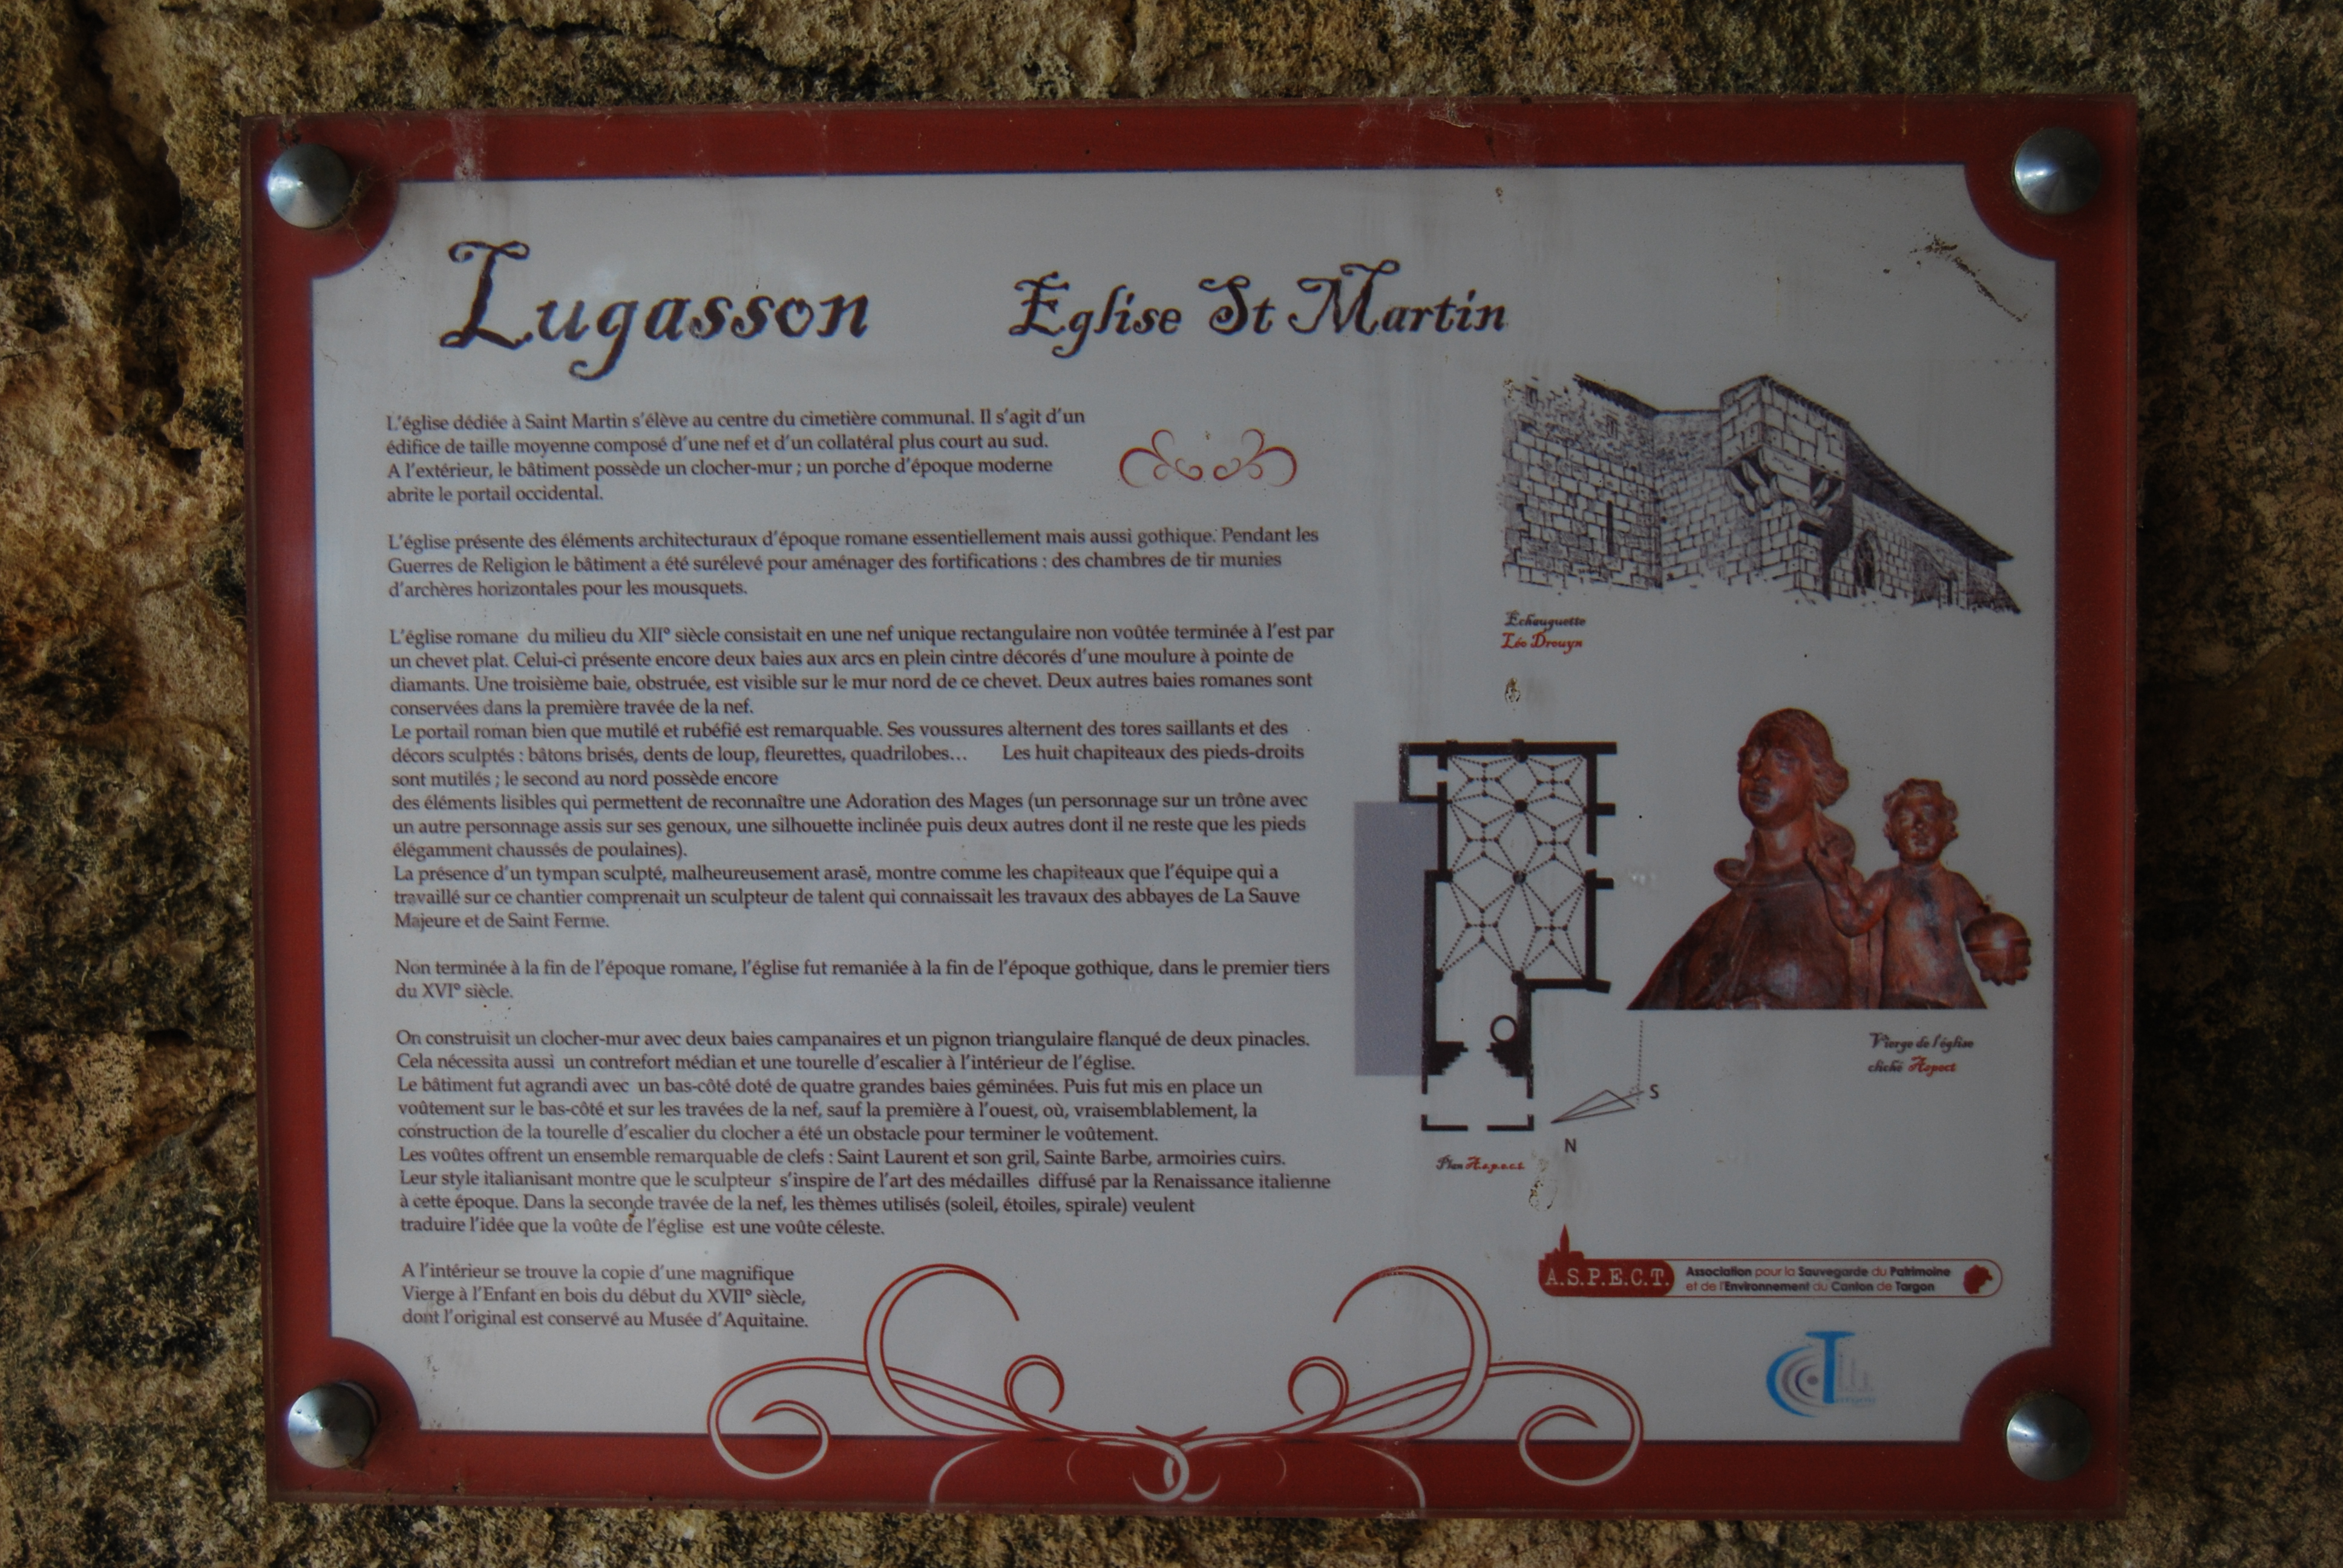 Taille Moyenne D Une Chambre file:lugasson eglise st martin 3 notice - wikimedia commons